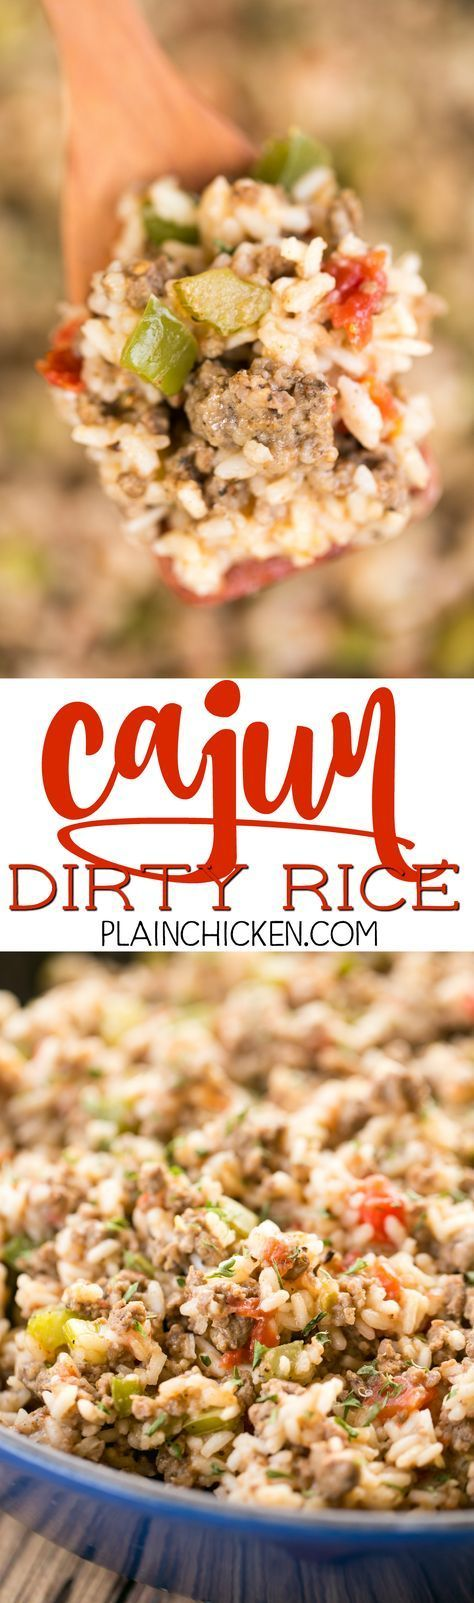 Cajun Dirty Rice ~ delicious one-pot meal that is ready in under 30 minutes! Ground beef, pork sausage, onion, bell pepper, celery, cajun seasoning, rice, chicken broth, diced tomatoes and green chiles...sure to be a huge hit! http://eatdojo.com/healthy-recipes-salads-haters/